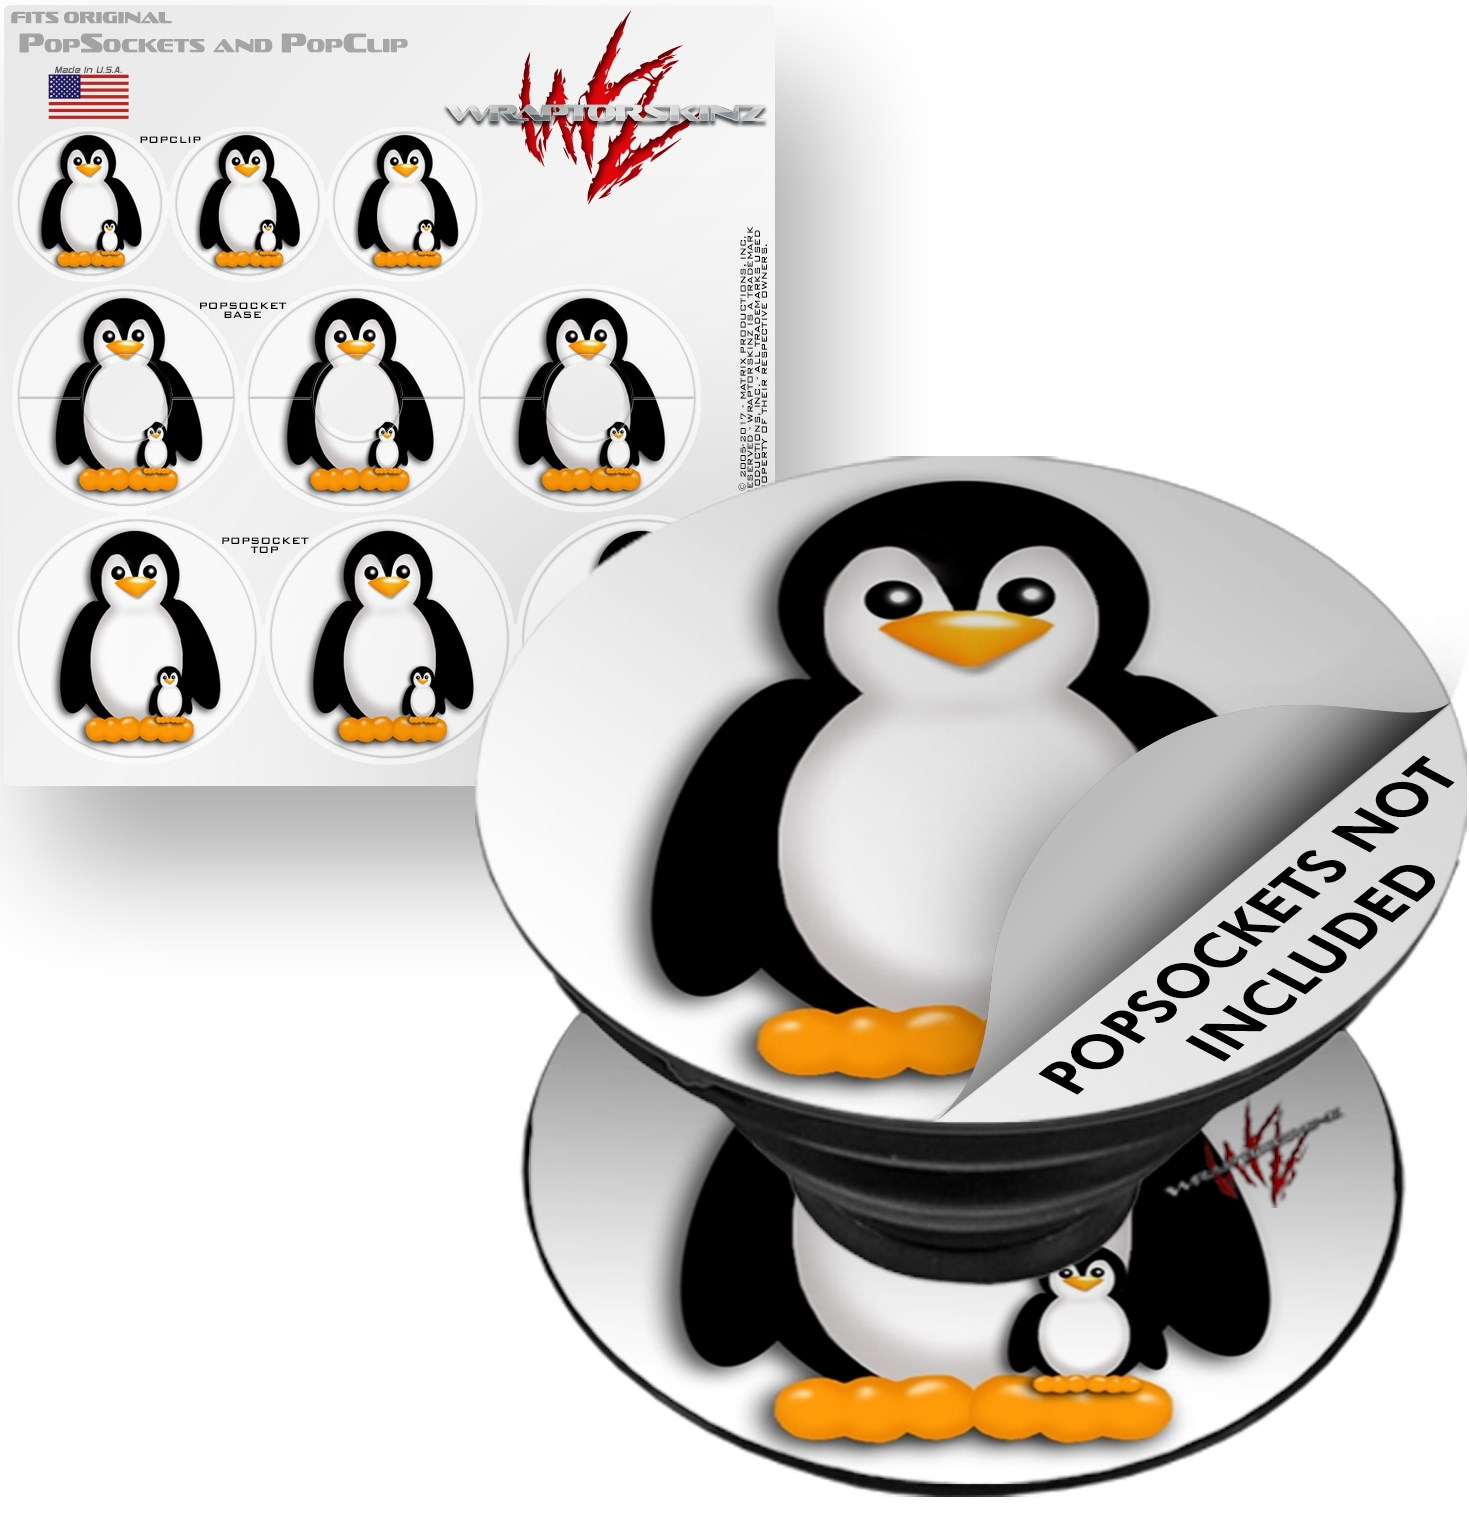 Decal Style Vinyl Skin Wrap 3 Pack for PopSockets Penguins on White (POPSOCKET NOT INCLUDED) by WraptorSkinz